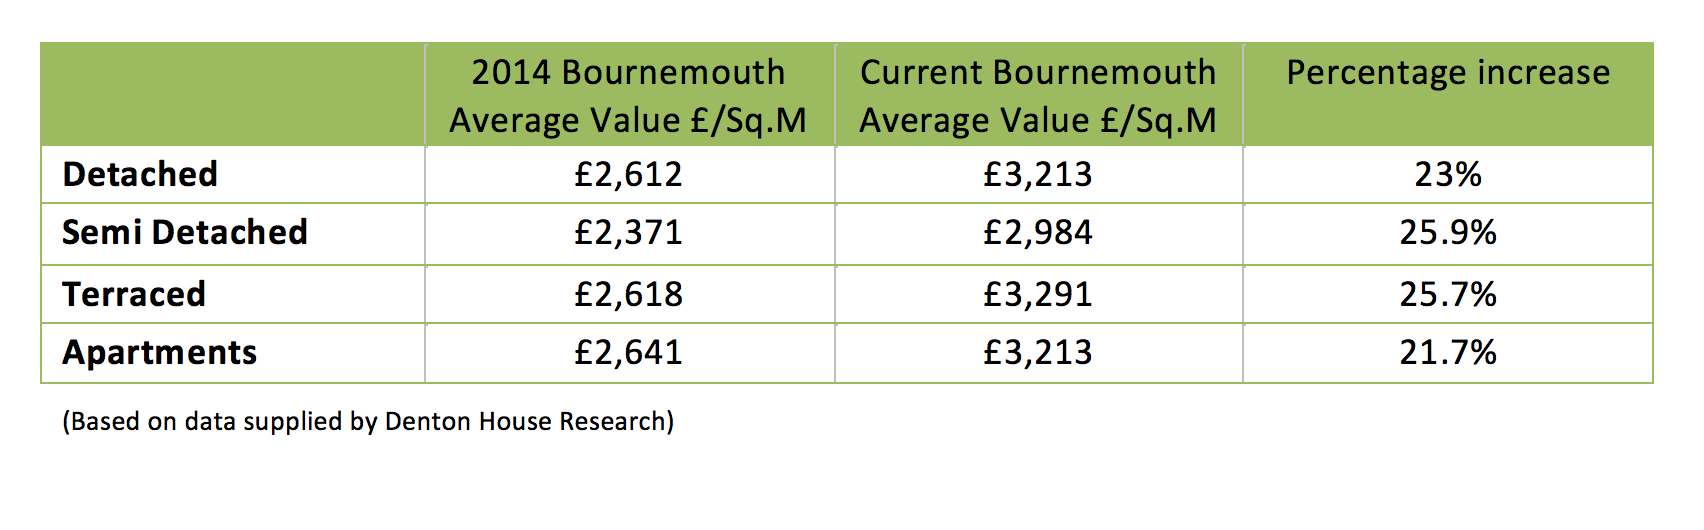 Graph showing increase in Bournemouth property values in the last 5 years